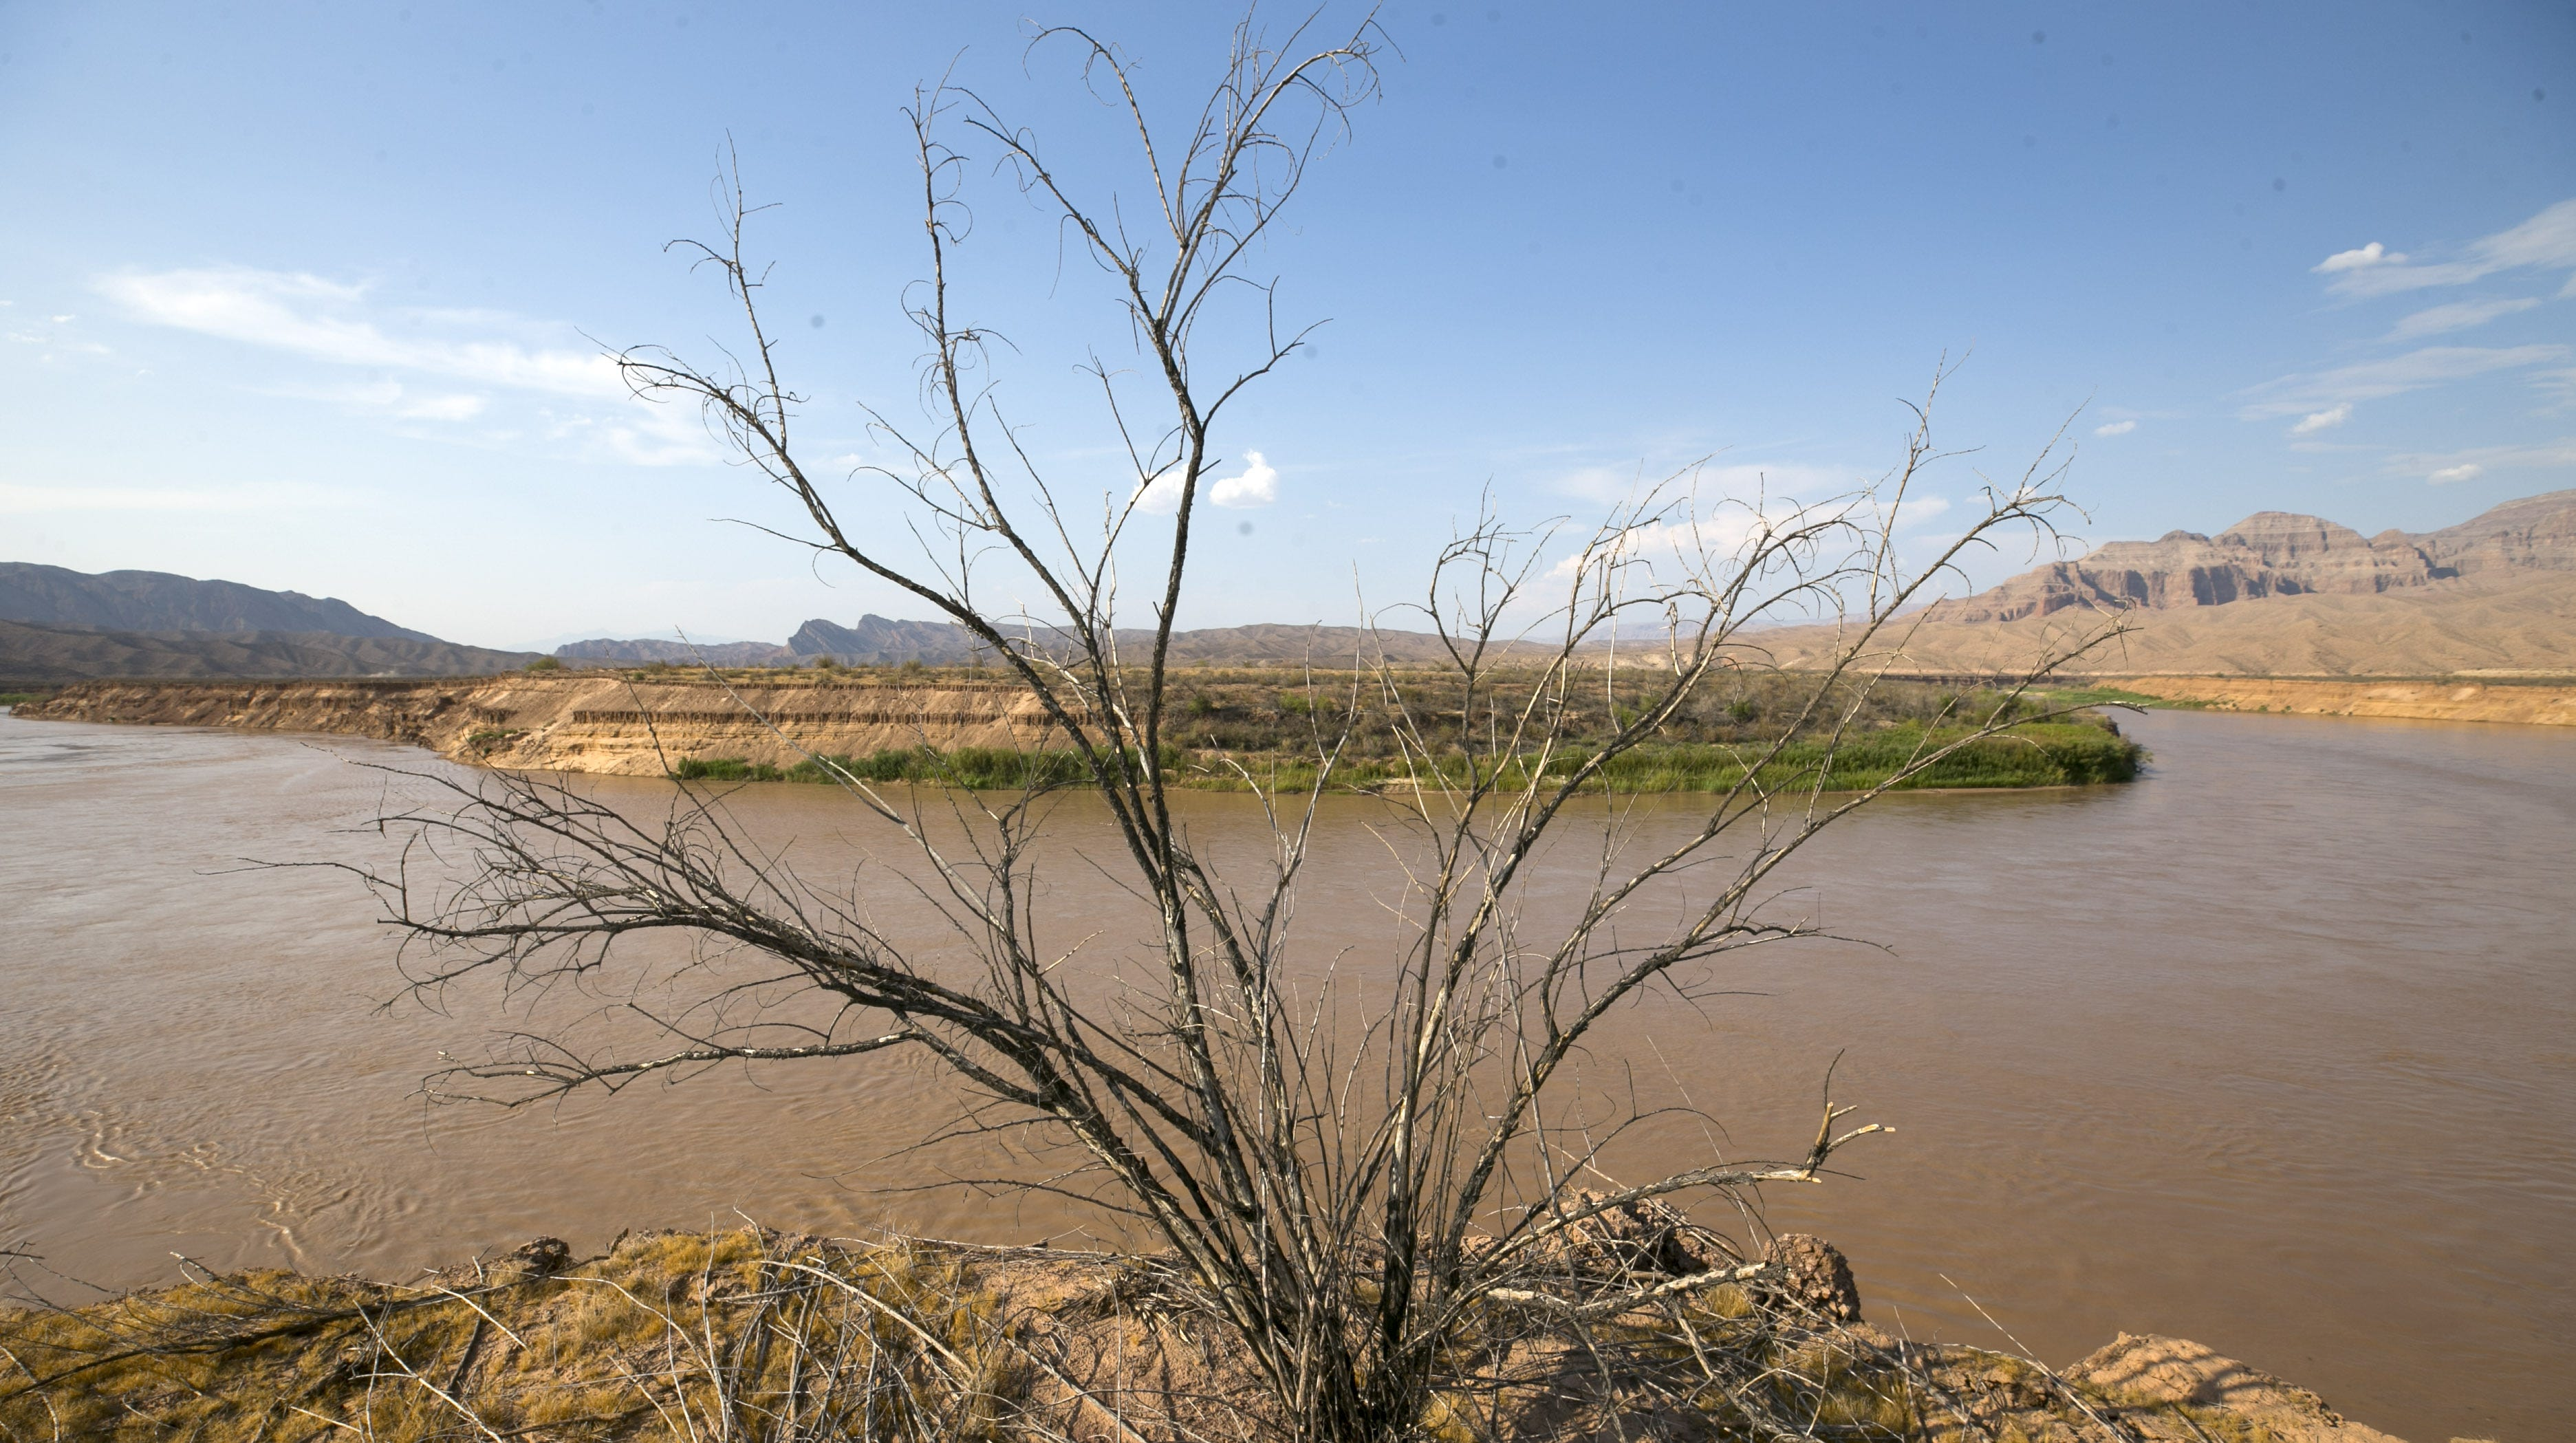 'A hot drought': Warming is driving much of the Colorado River's decline, scientists say